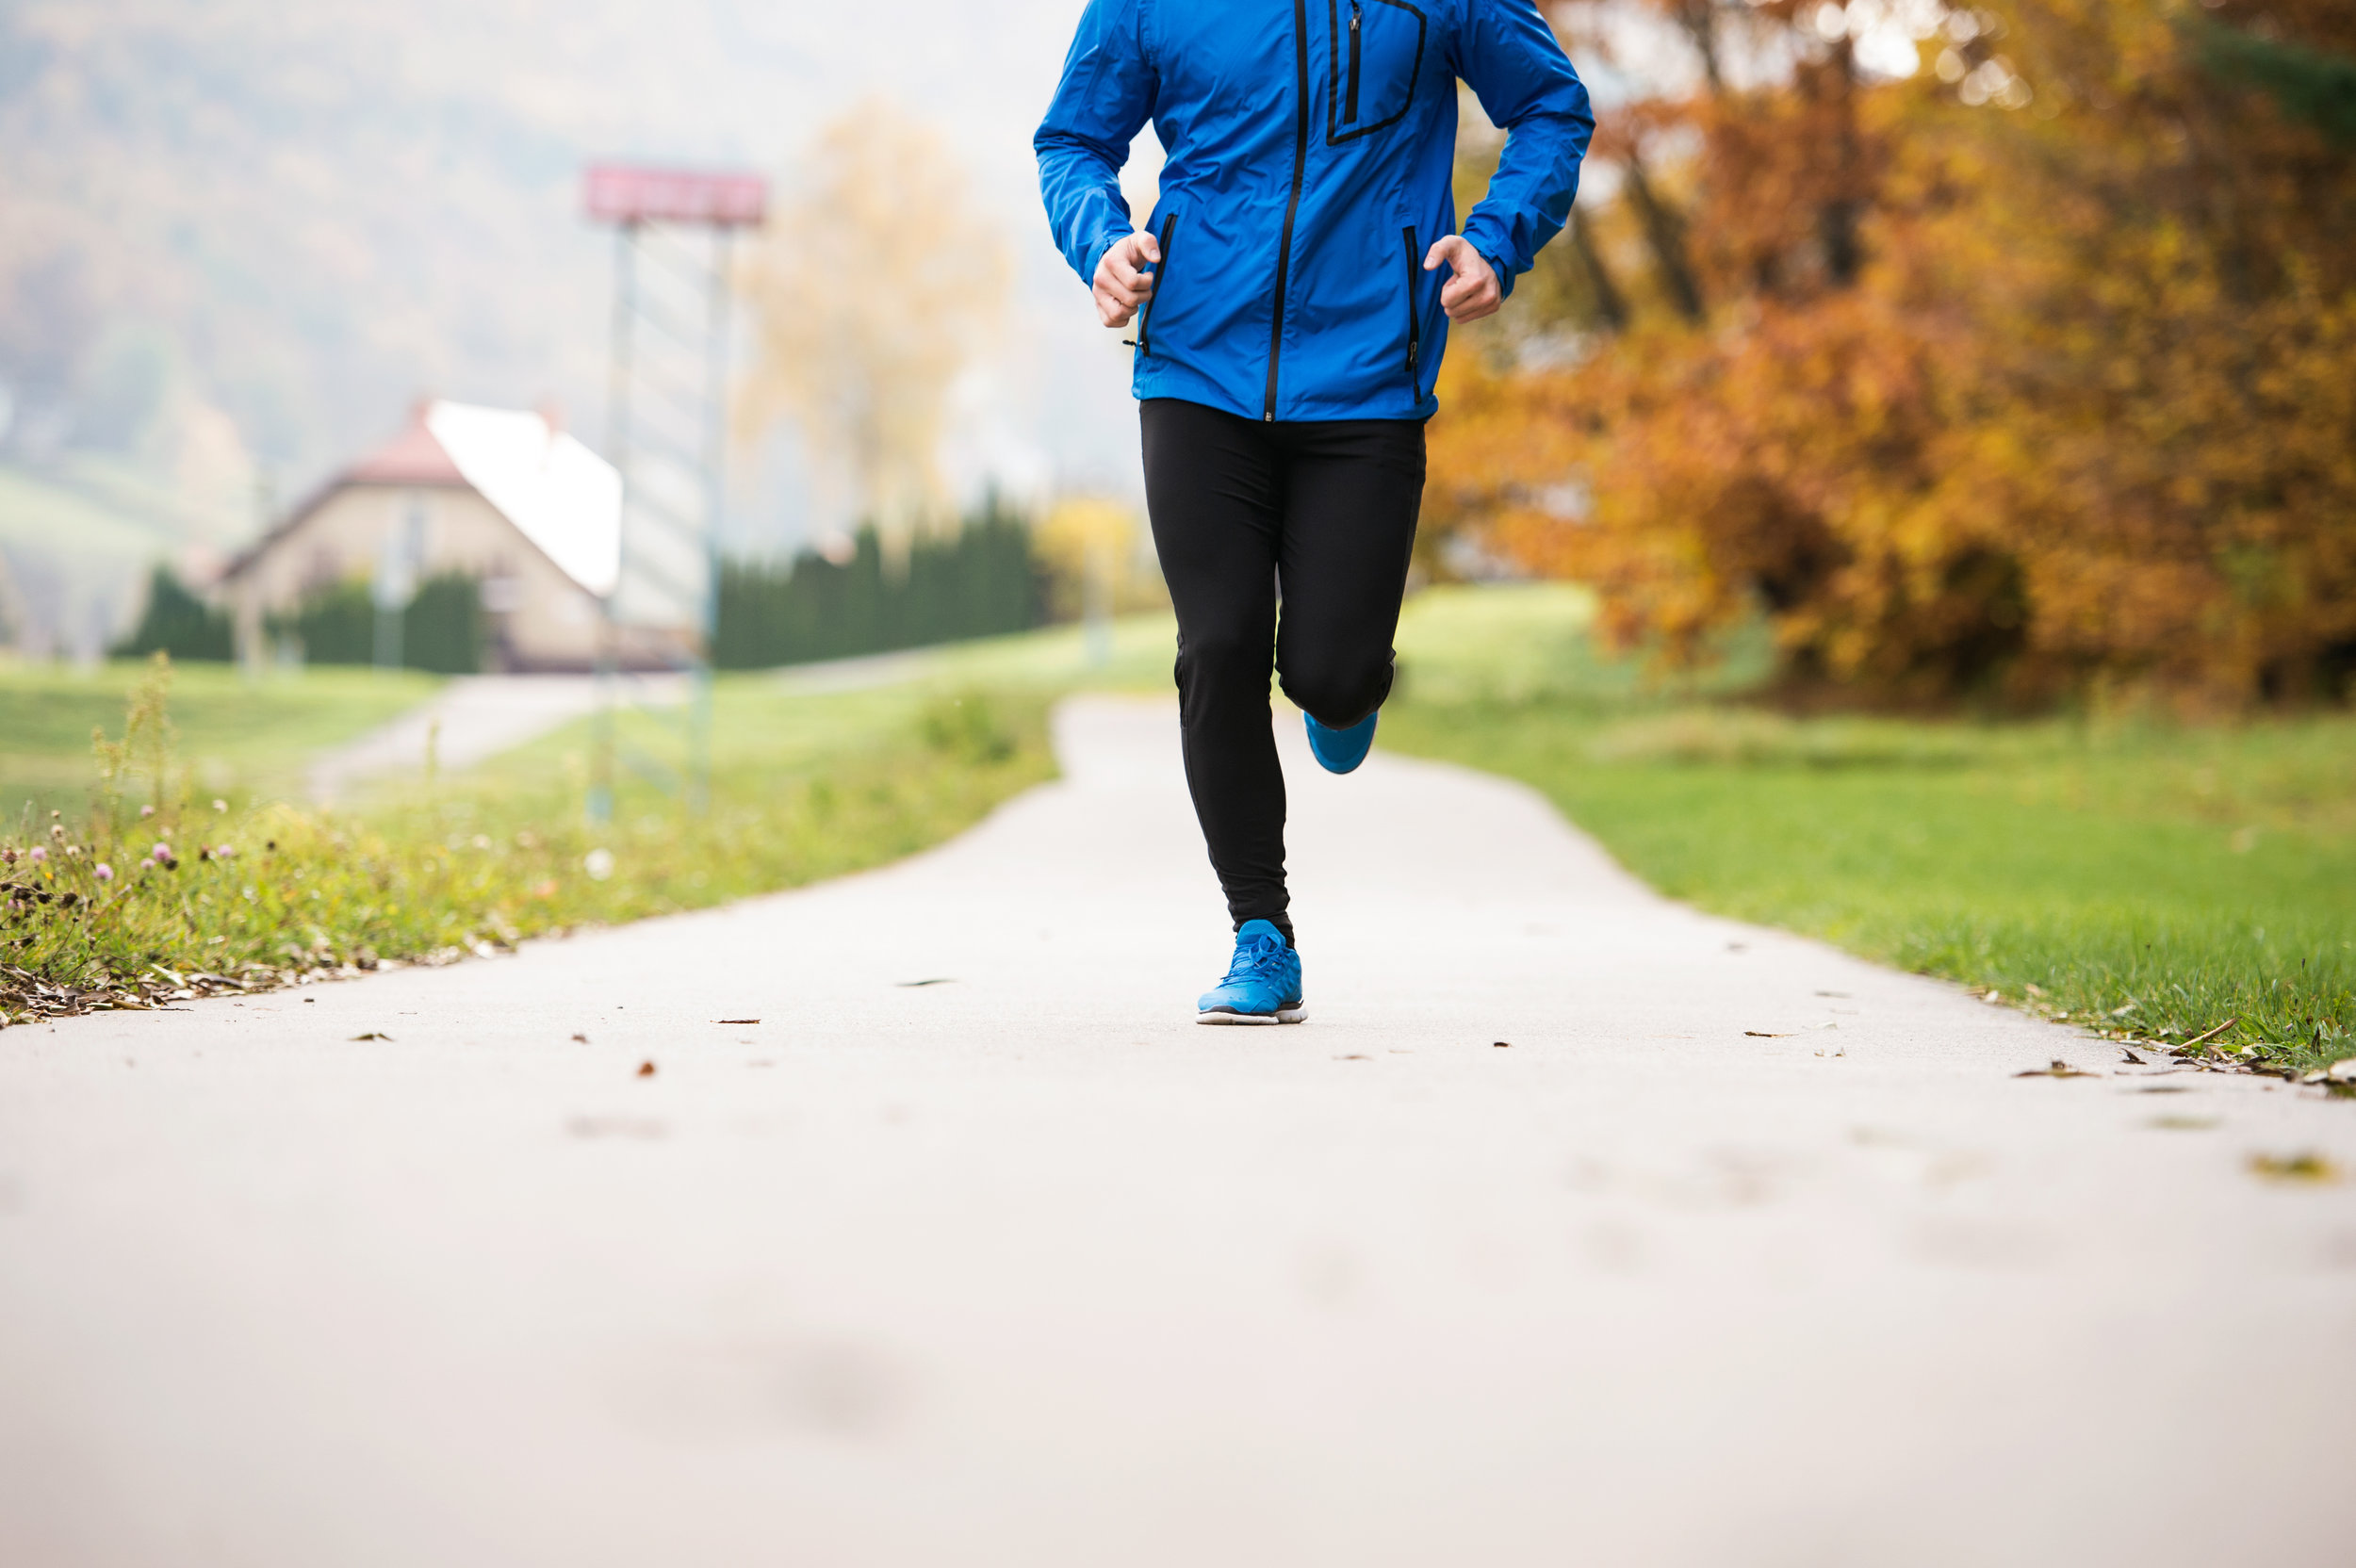 graphicstock-unrecognizable-young-athlete-in-blue-jacket-running-outside-in-colorful-sunny-autumn-nature-on-an-asphalt-path-leading-through-green-grass-trail-runner-training-for-cross-country-running_rOgasQ2Szb.jpg